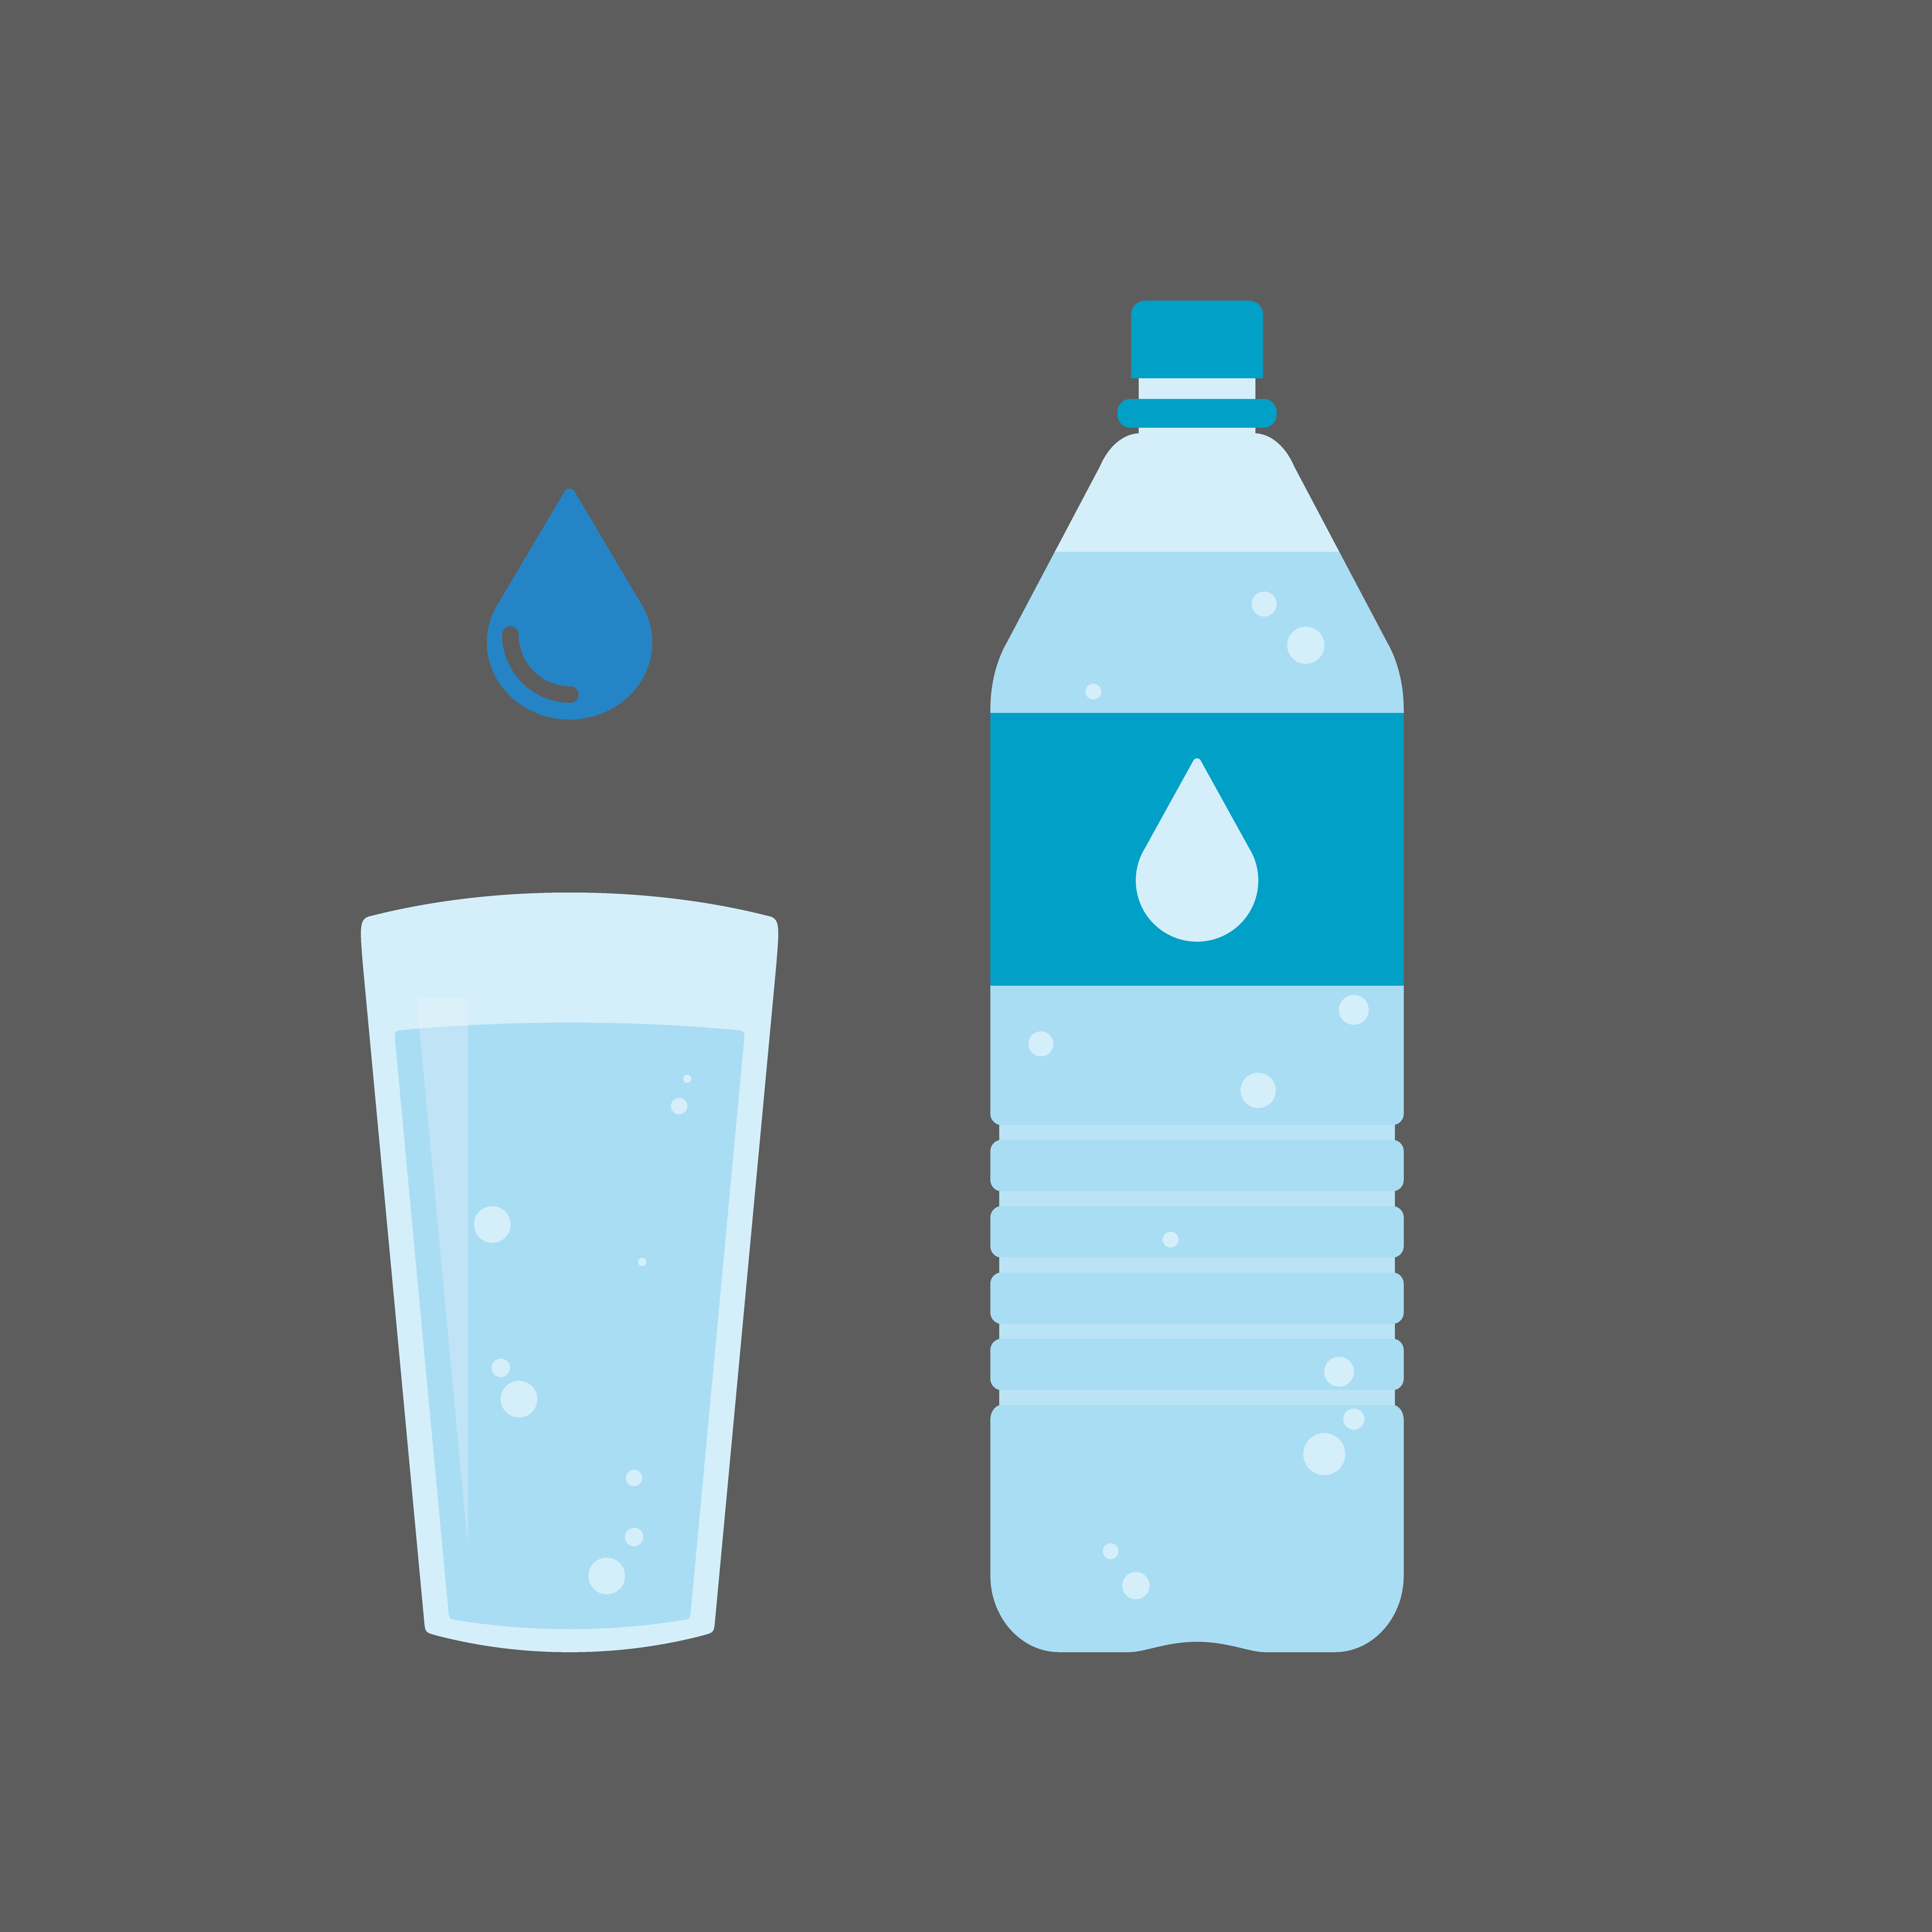 In terms of mineral water - the more minerals, the better!